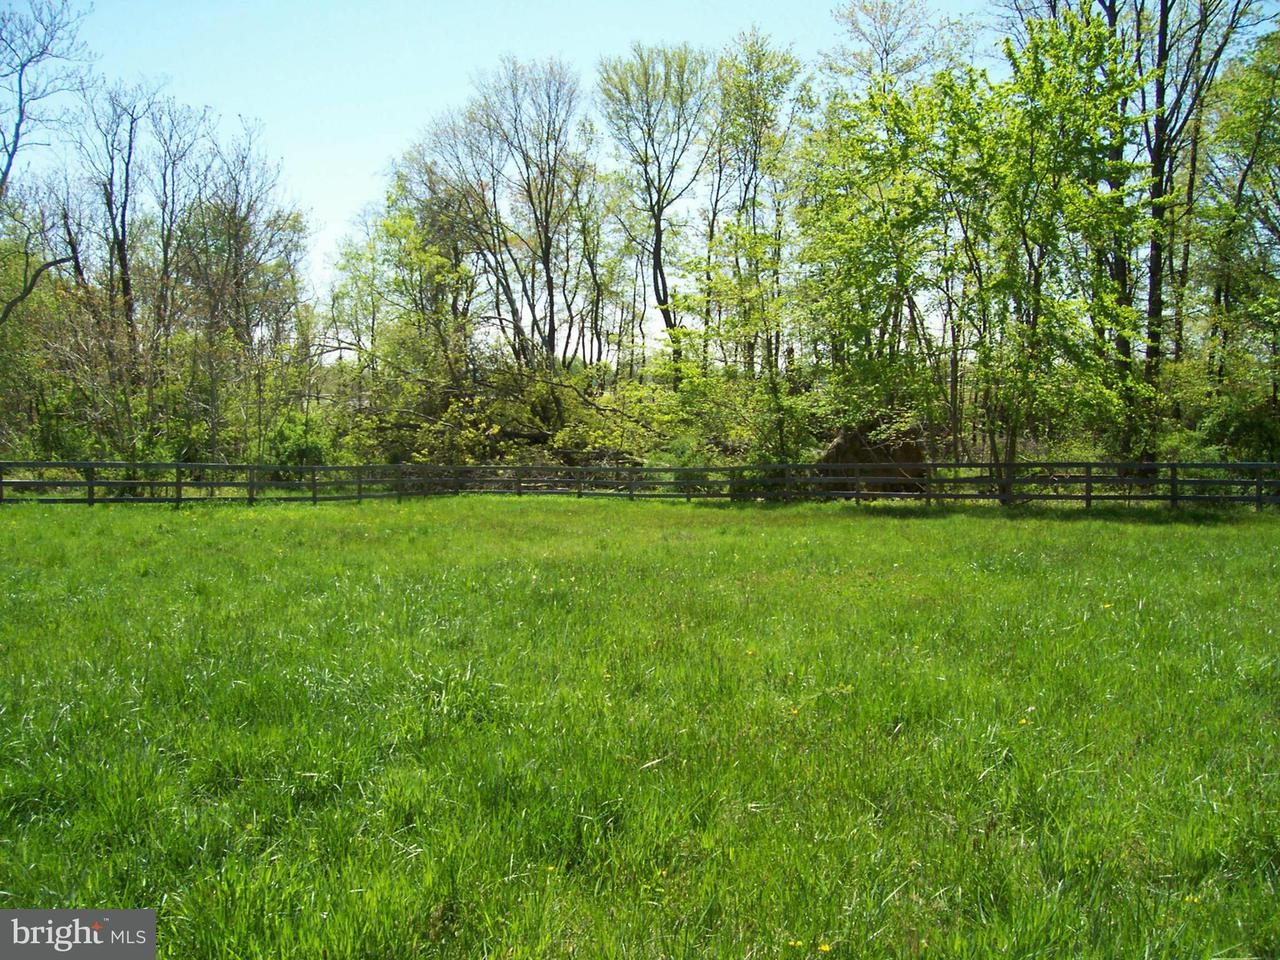 Additional photo for property listing at ST. LOUIS Road ST. LOUIS Road Middleburg, Βιρτζινια 20117 Ηνωμενεσ Πολιτειεσ